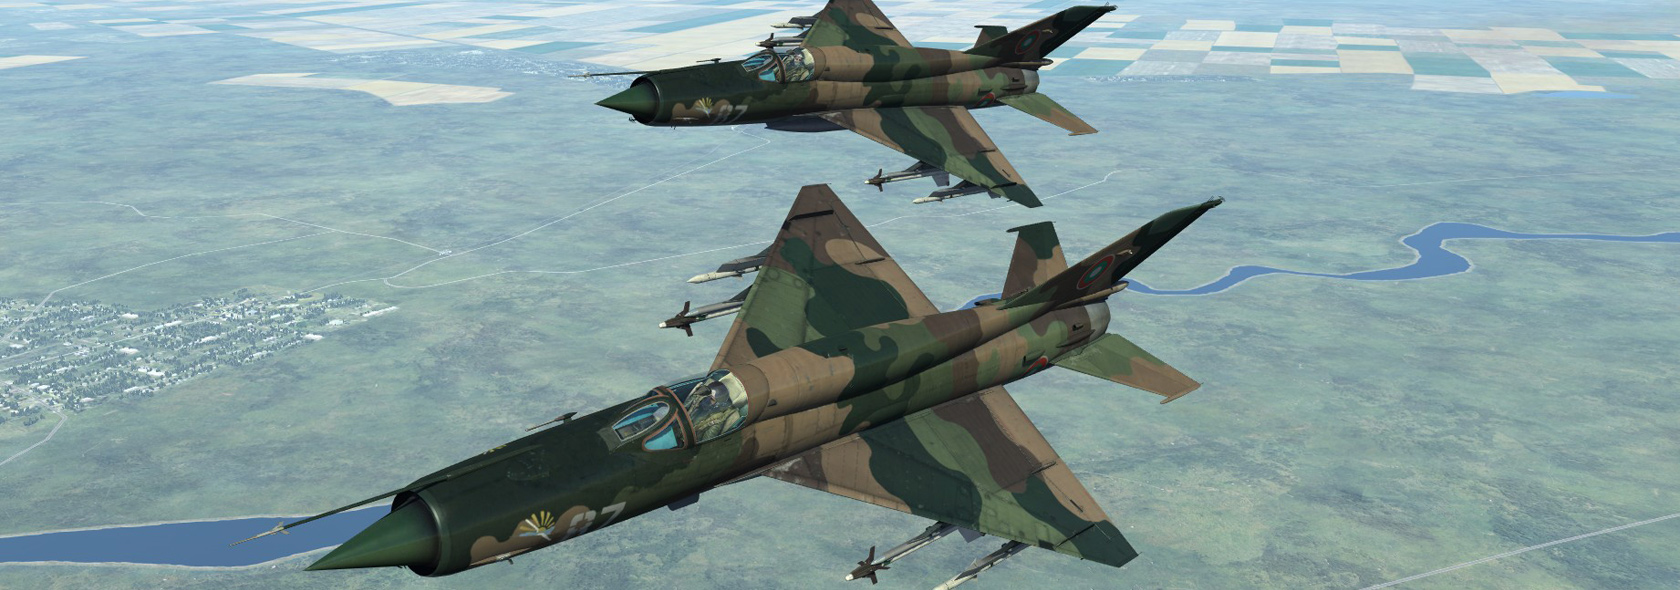 MiG-21bis test skins for DCS 1.5.3.x